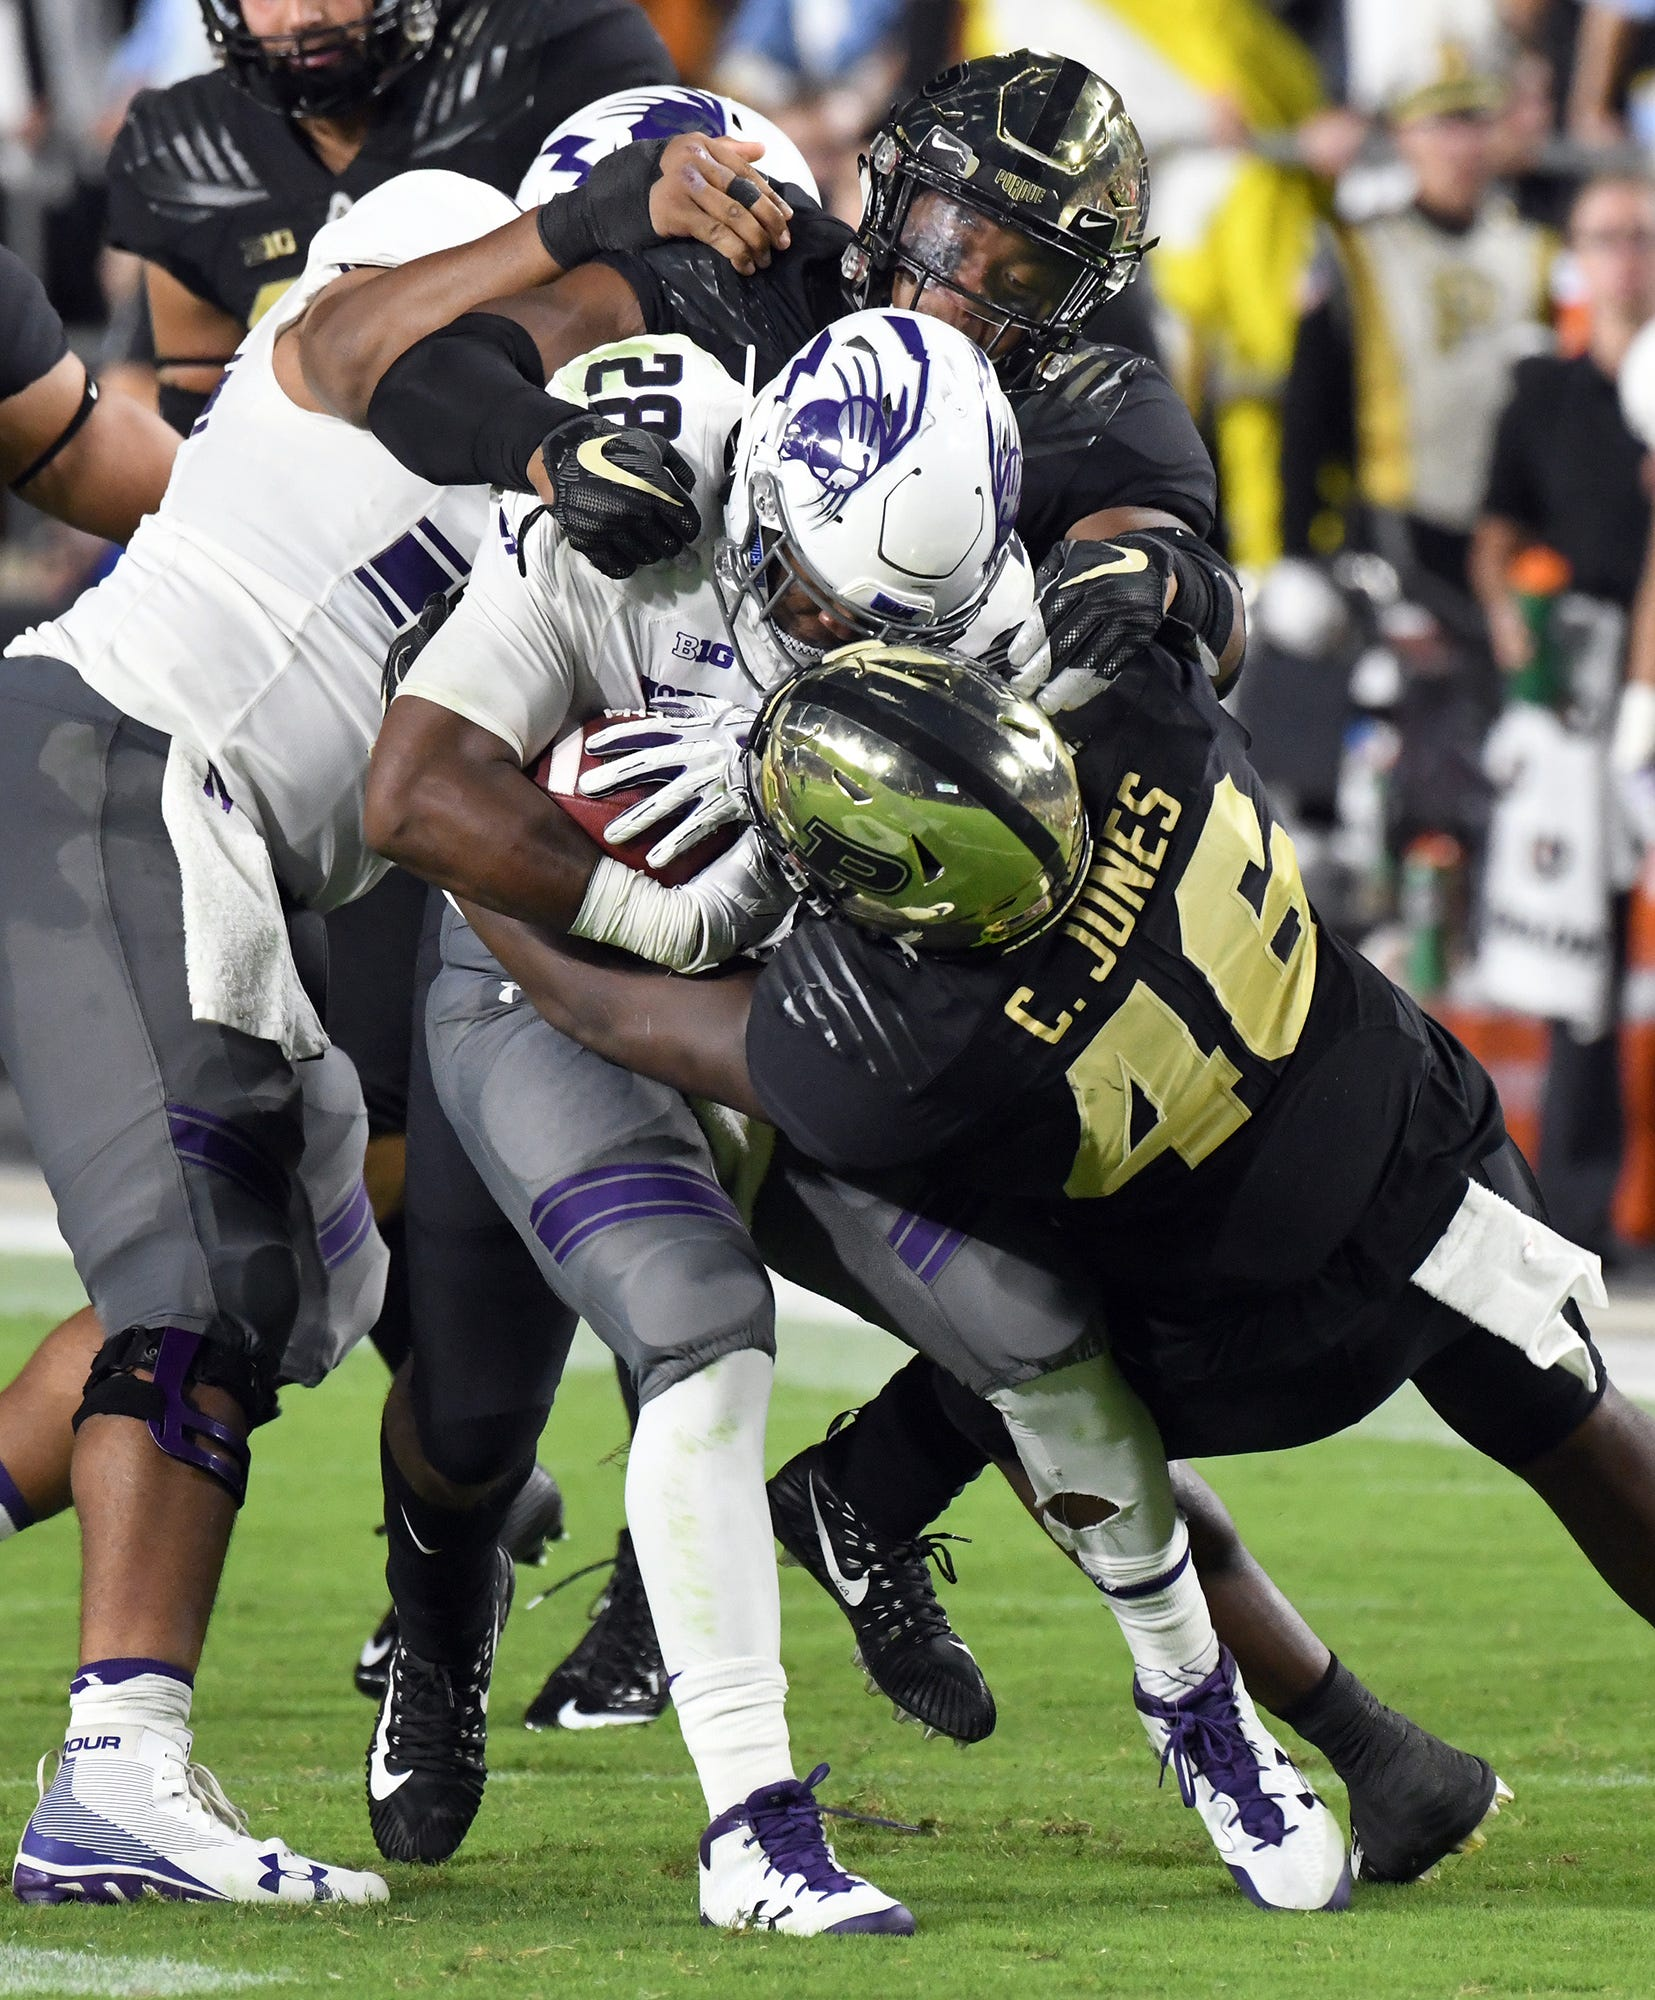 The Purdue defense wraps up Jeremy Larkin of Northwestern Thursday, August 30, 2018, at Ross-Ade Stadium. Purdue fell to Northwestern 31-27.